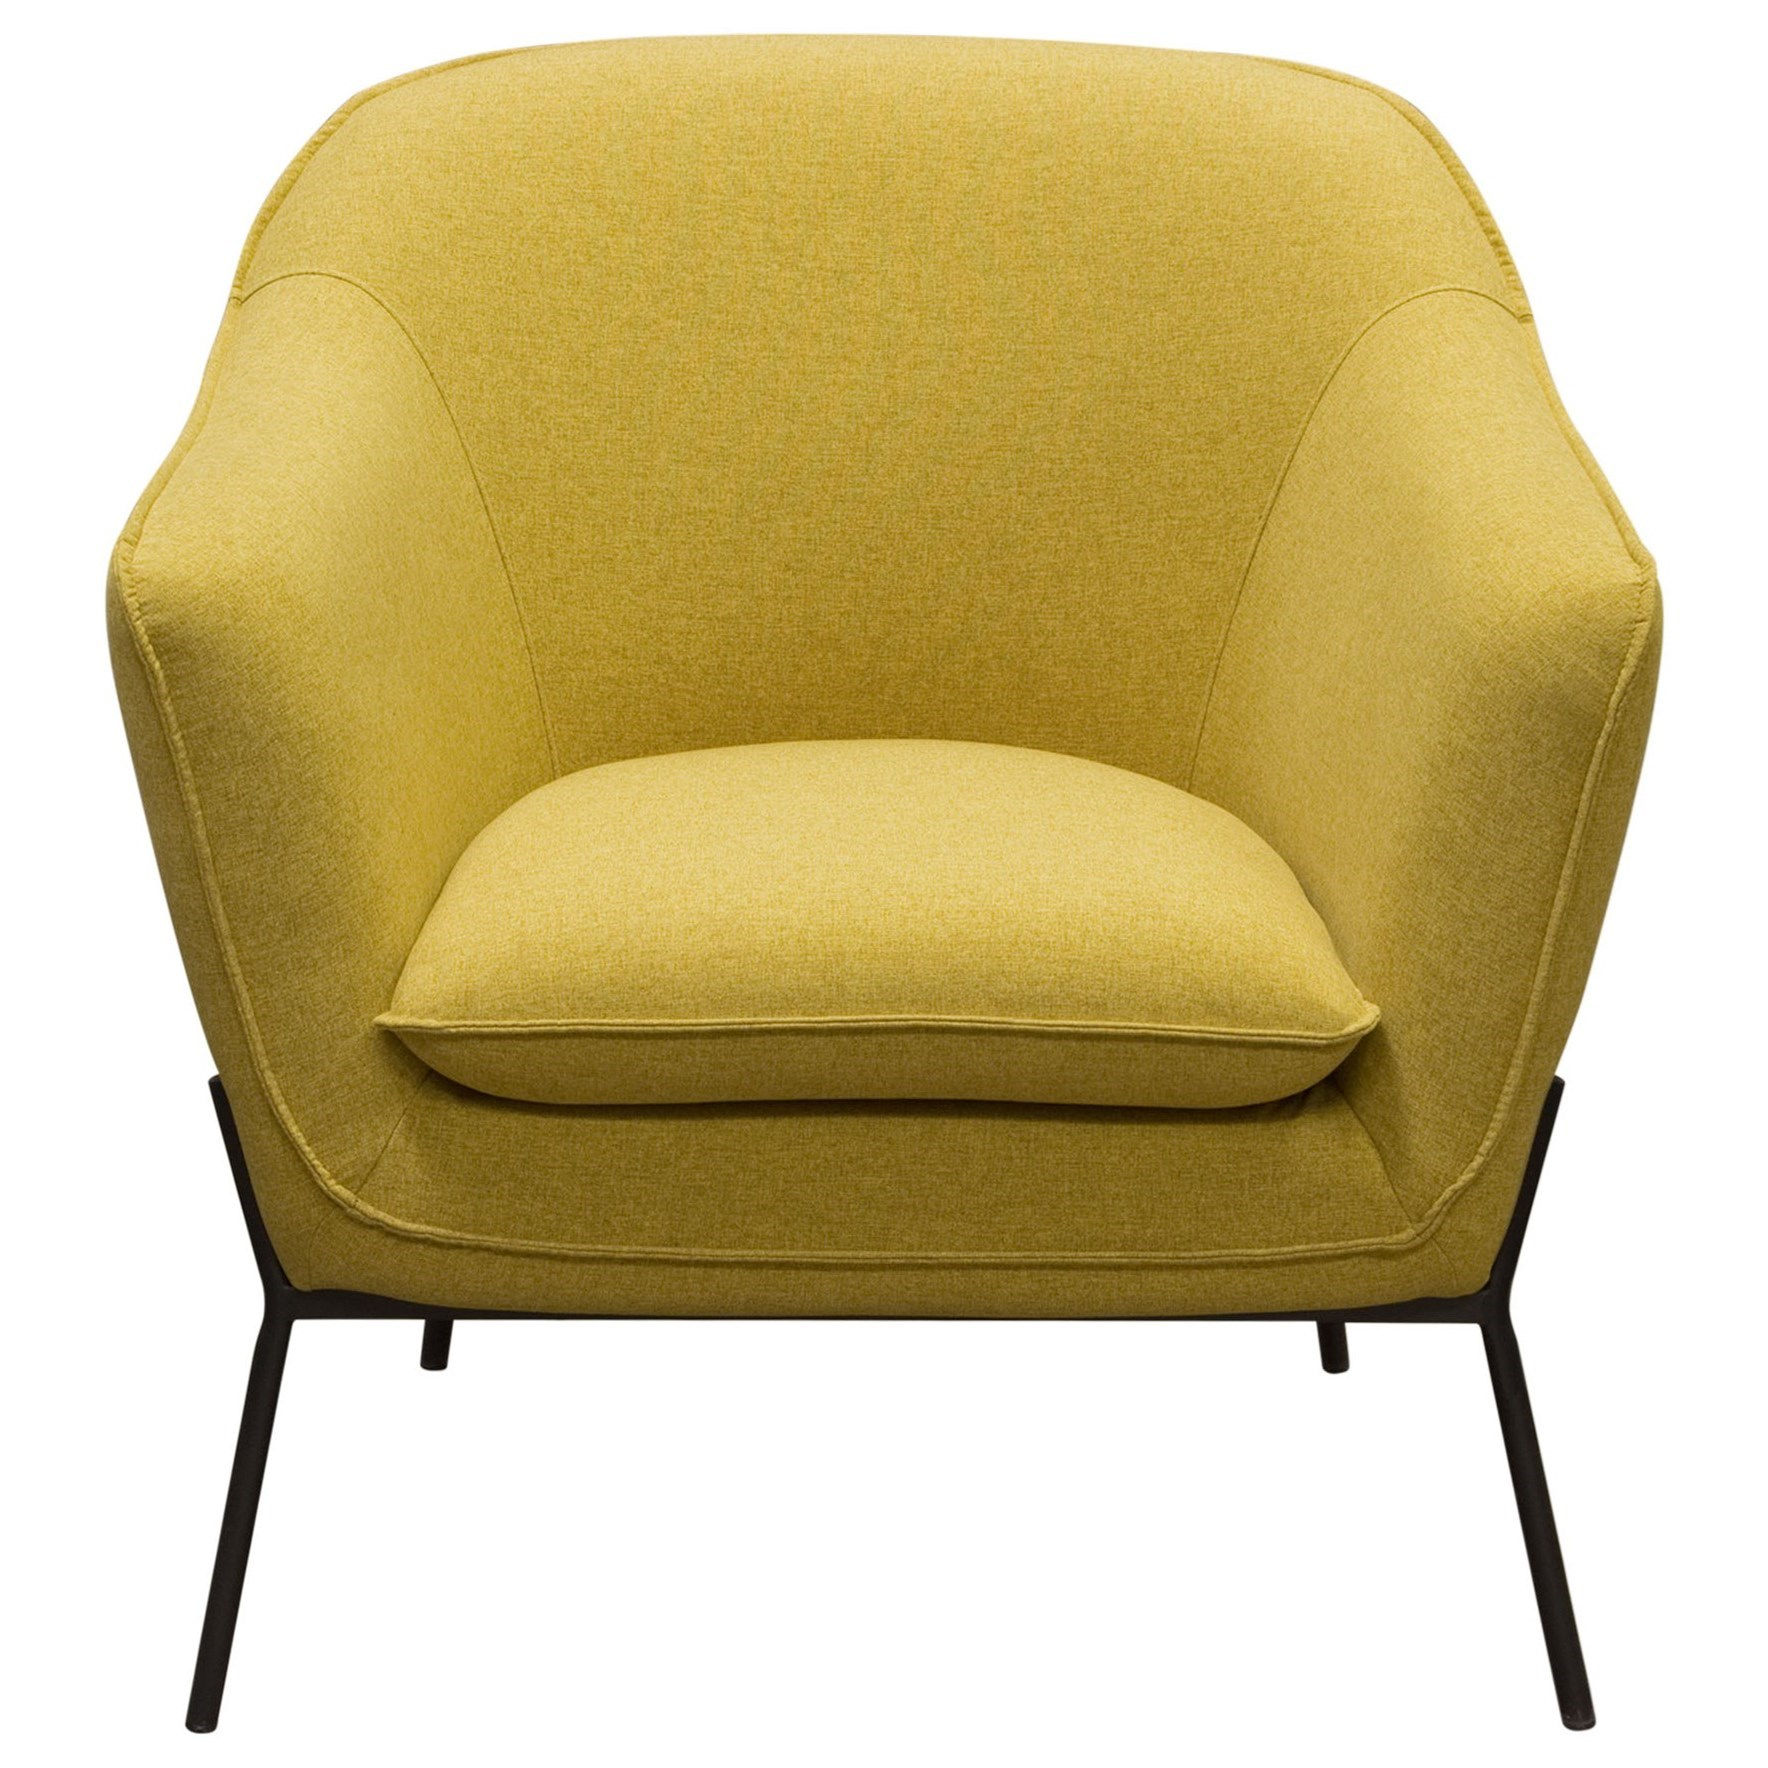 Status Chair by Diamond Sofa at Red Knot